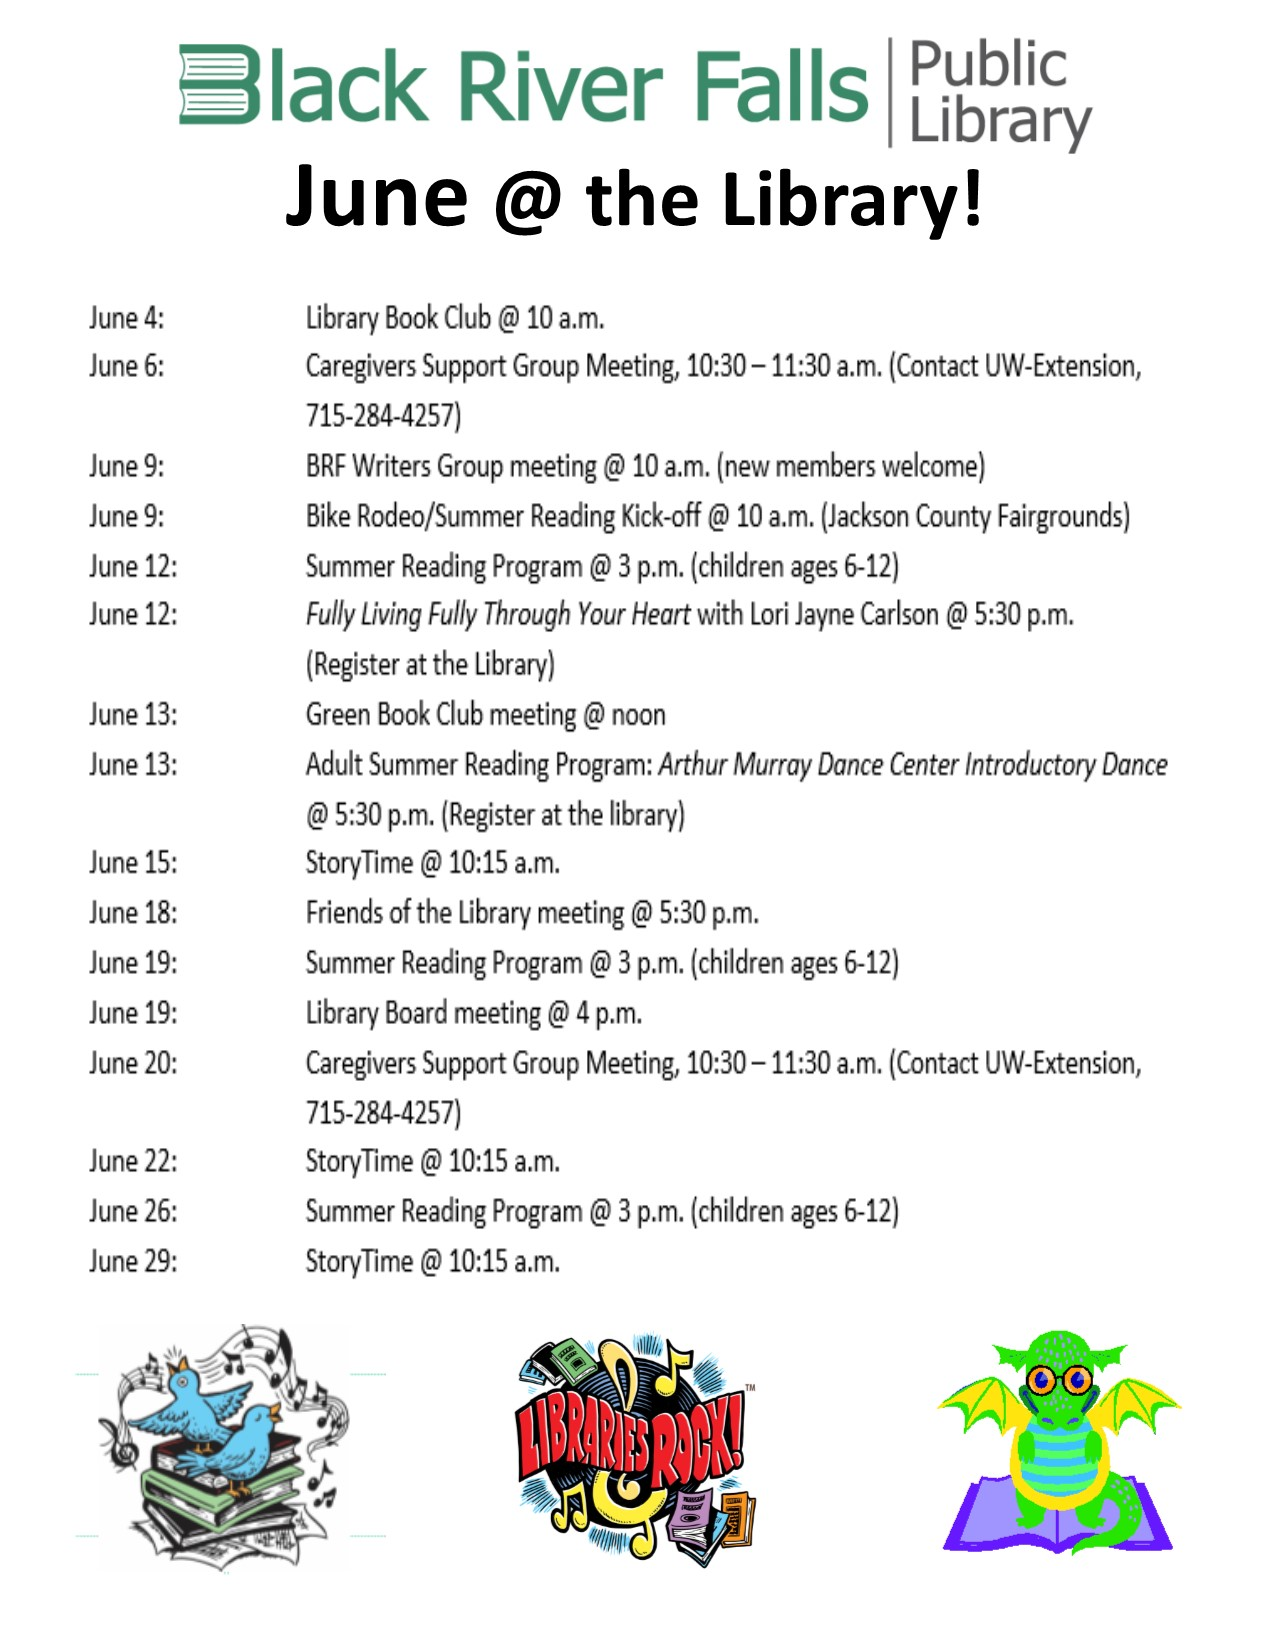 Library Calendar of Events - June 2018